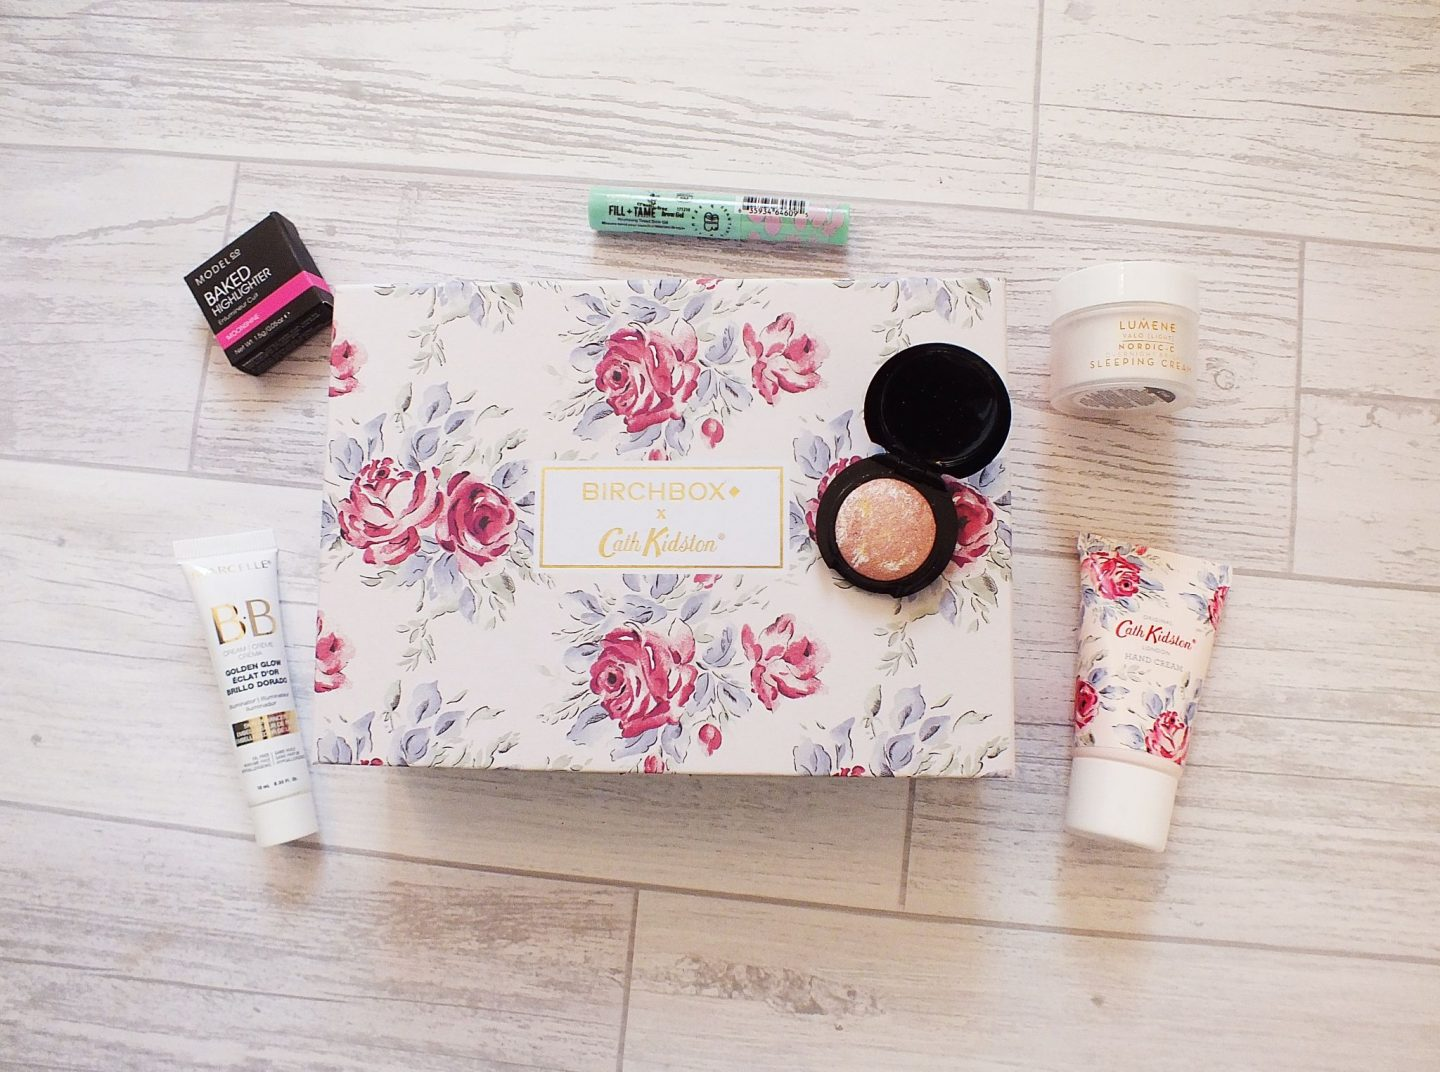 April Birchbox UK Box Contents flatlay on grey wood